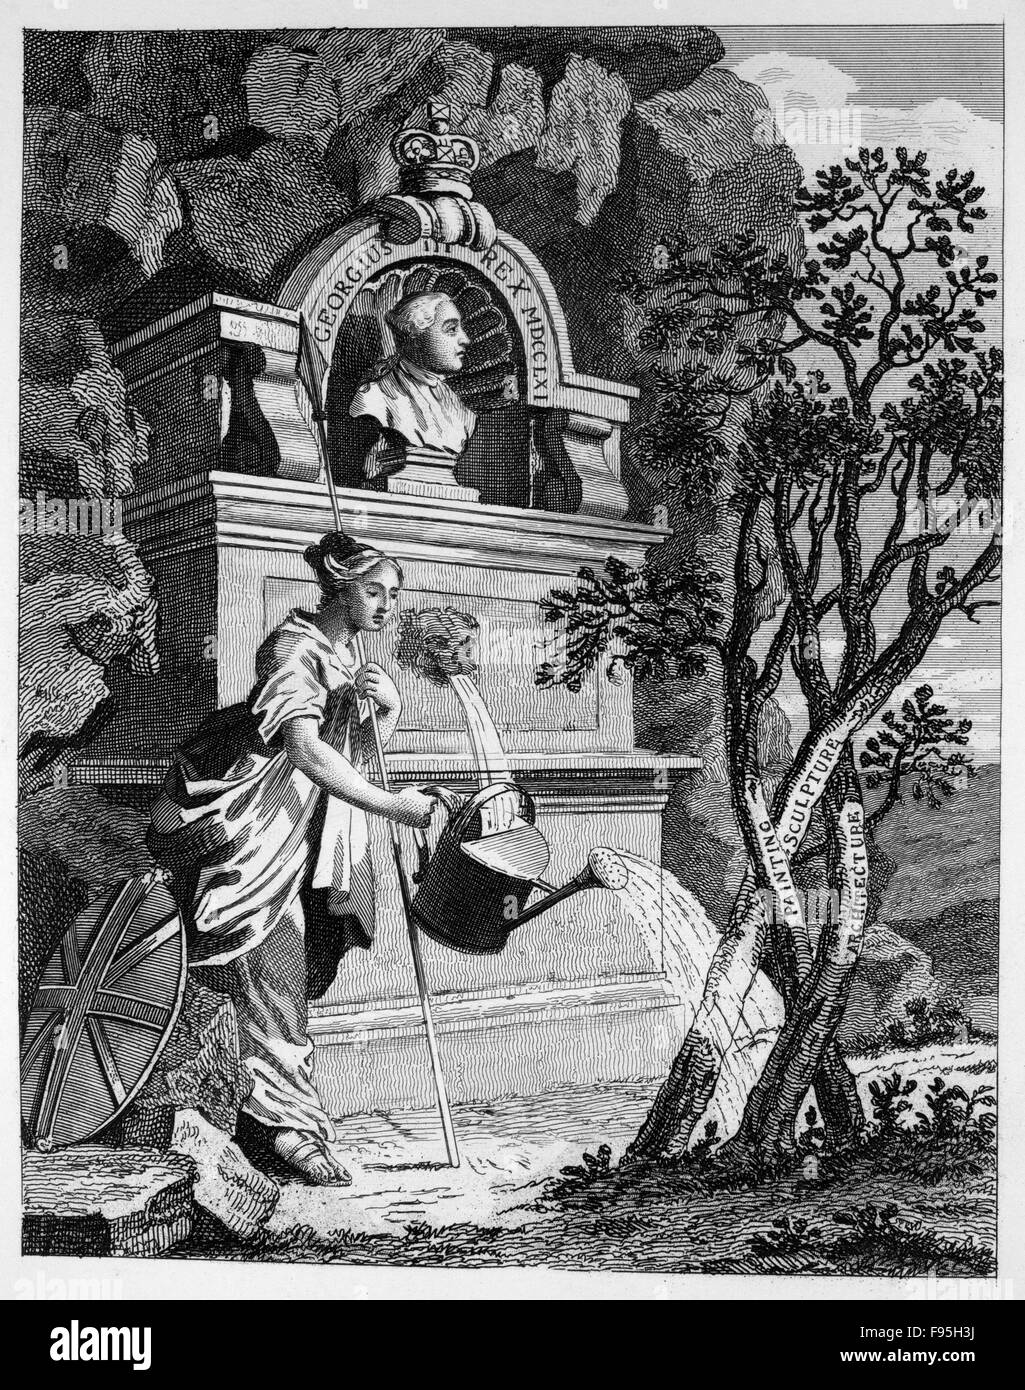 Frontispiece to the Artist Catalogue. - Stock Image